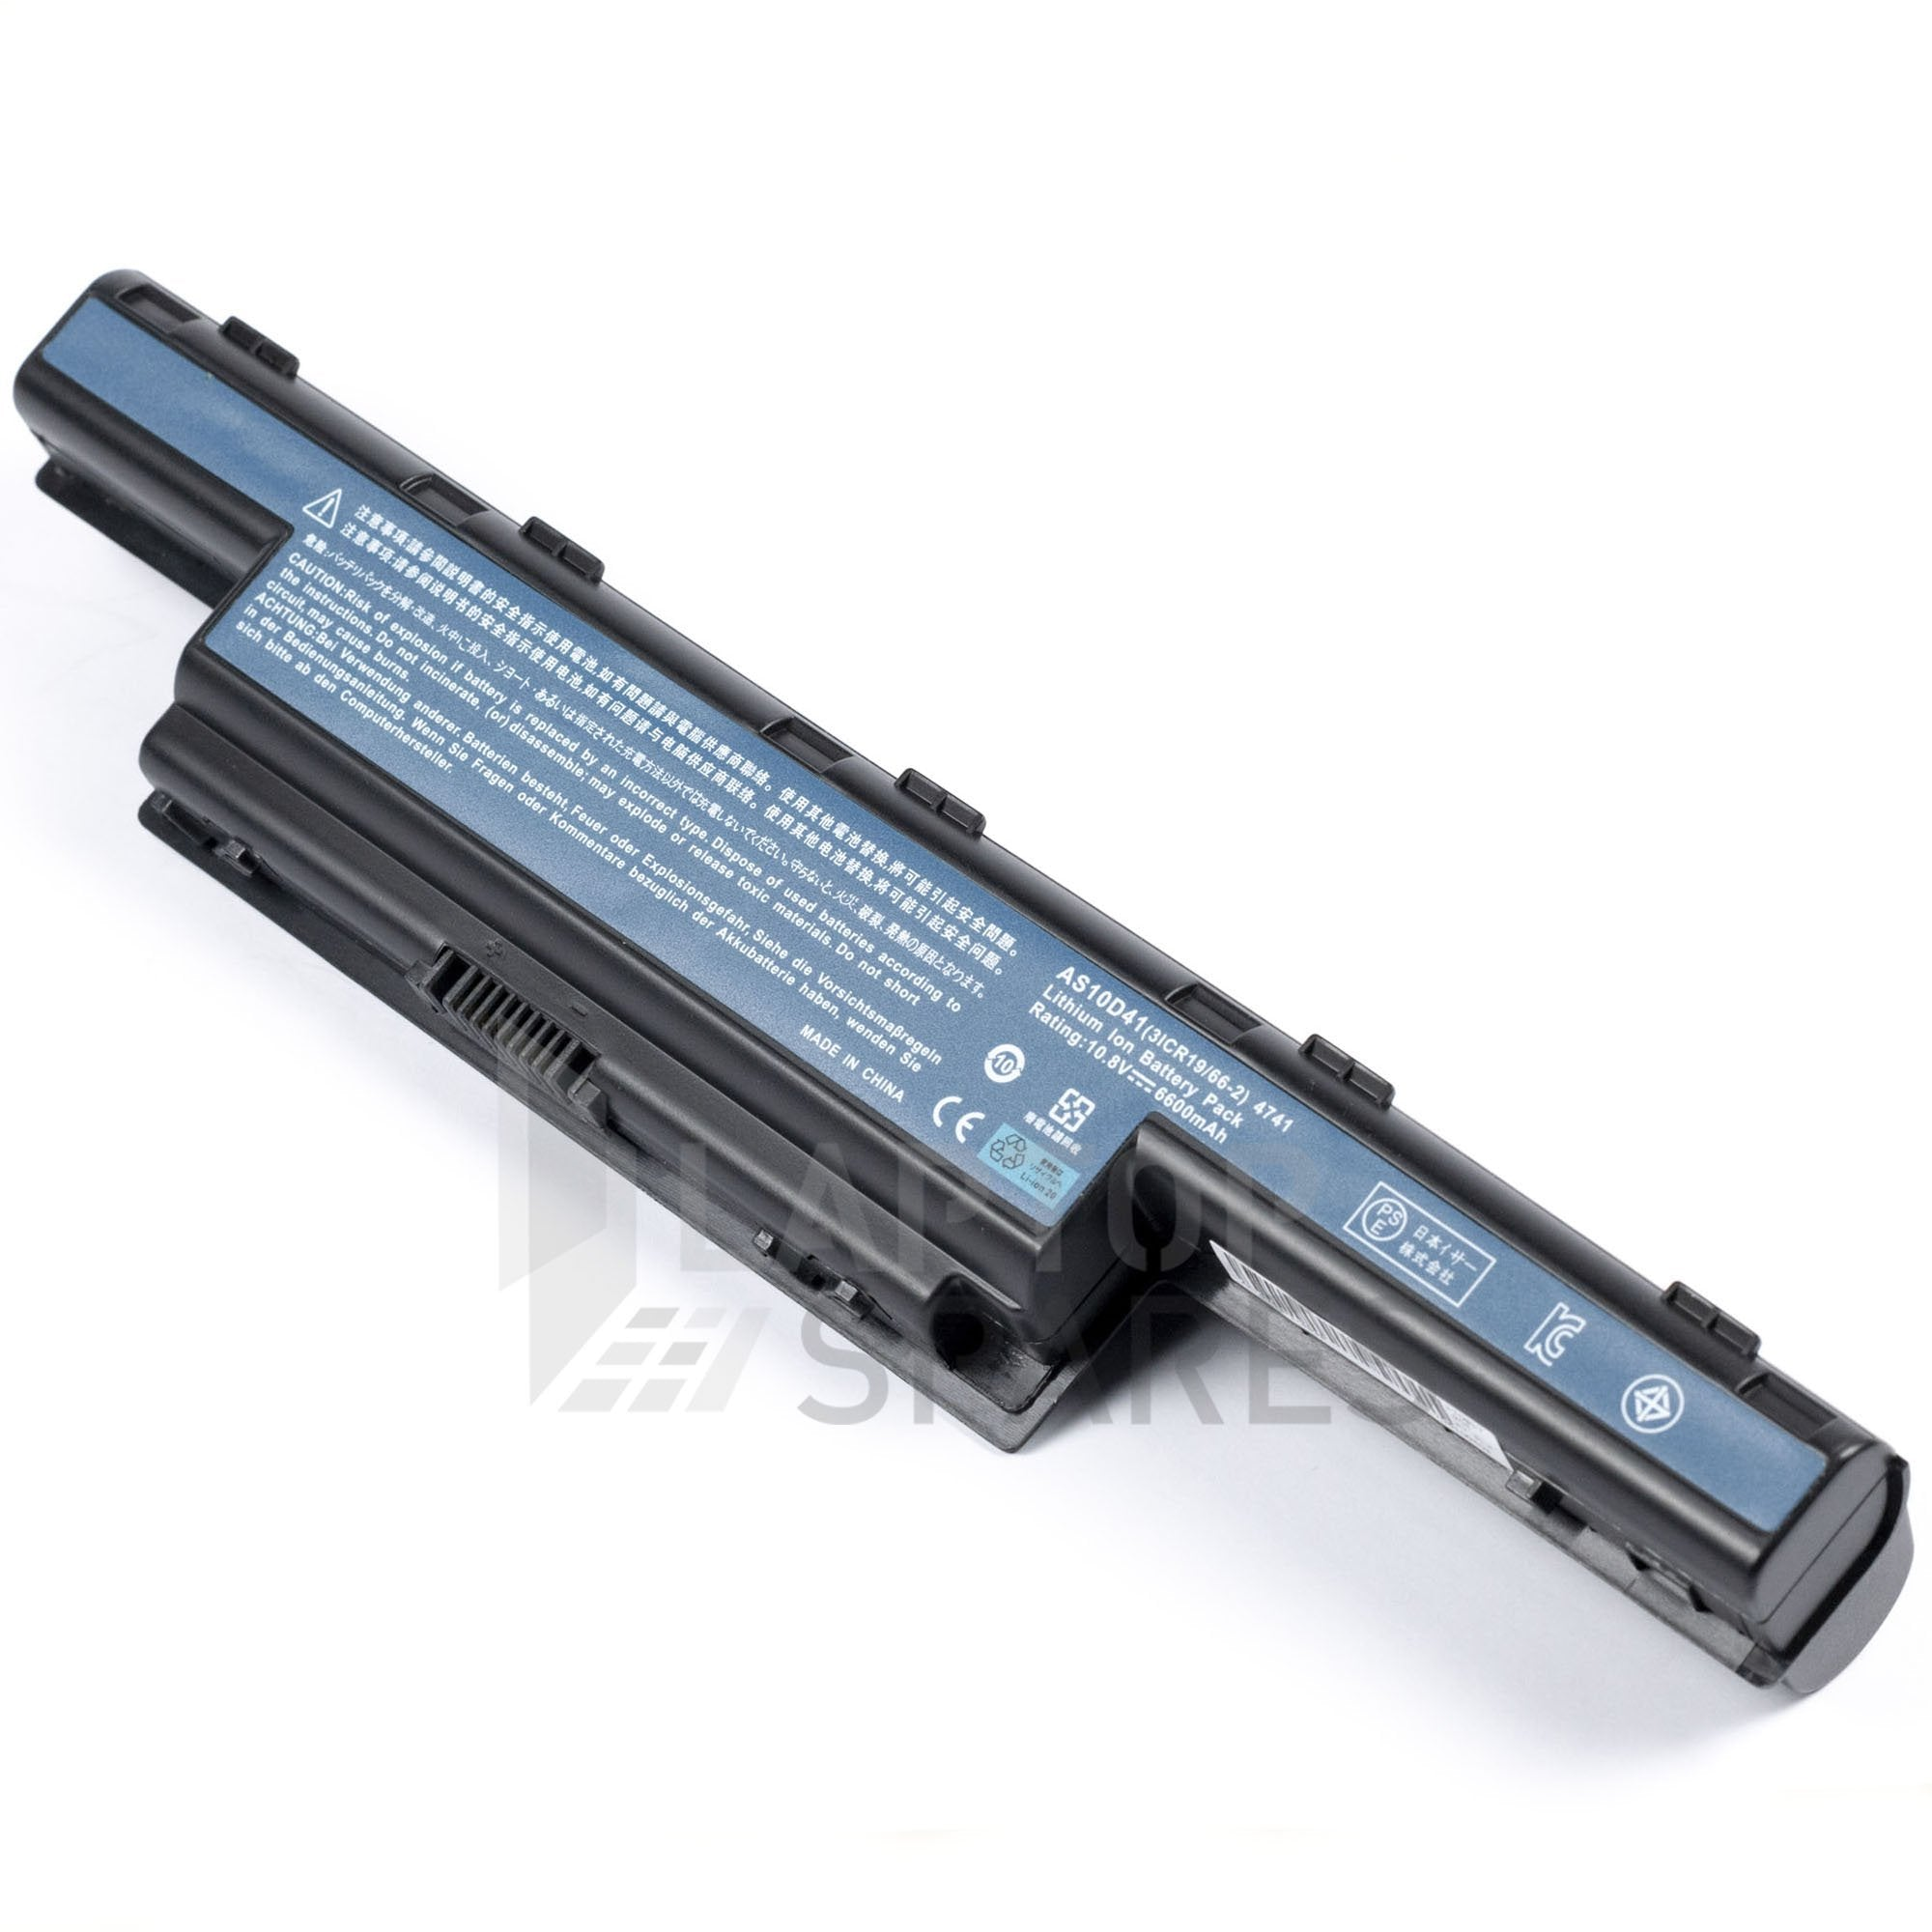 Acer AS10D31 AS10D41 AS10D51 6600mAh 9 Cell Battery